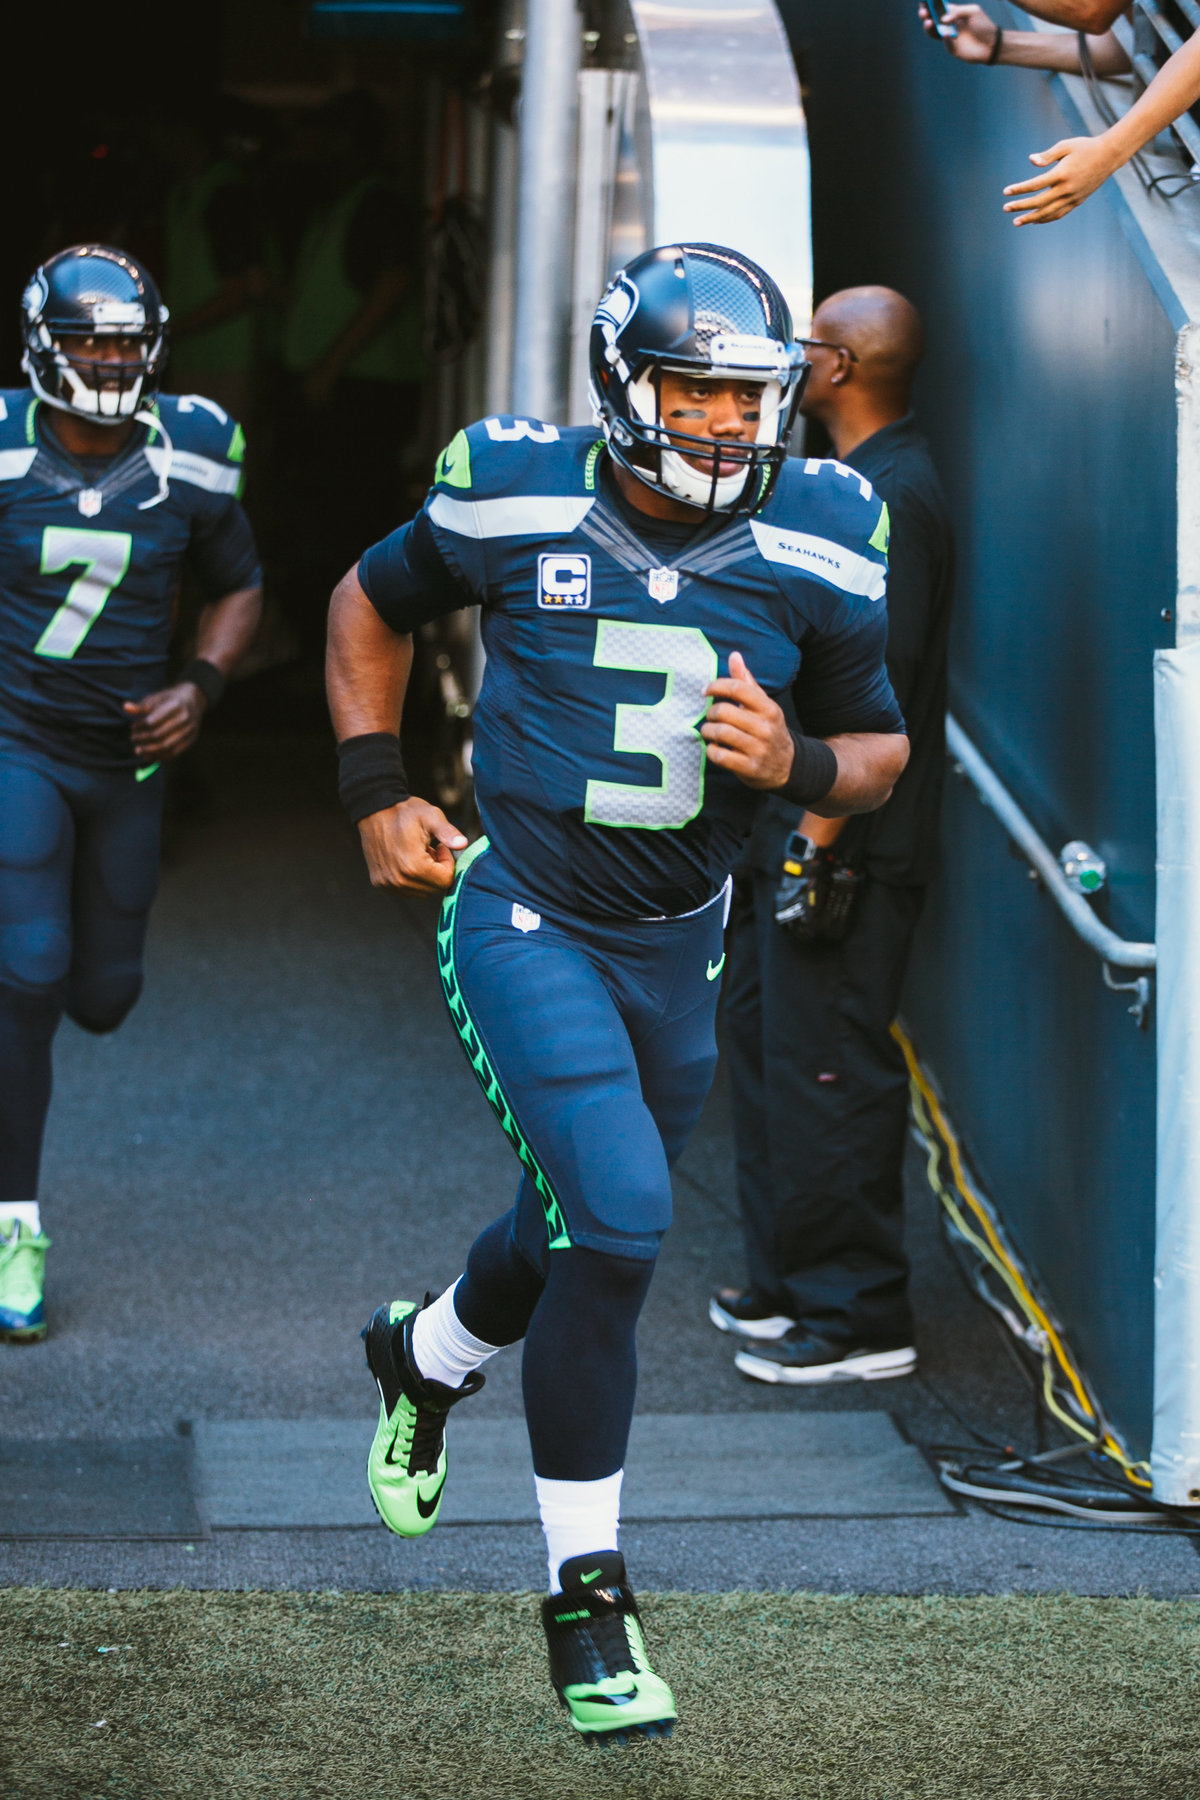 SeahawksVSPackers_9.4.14-6710